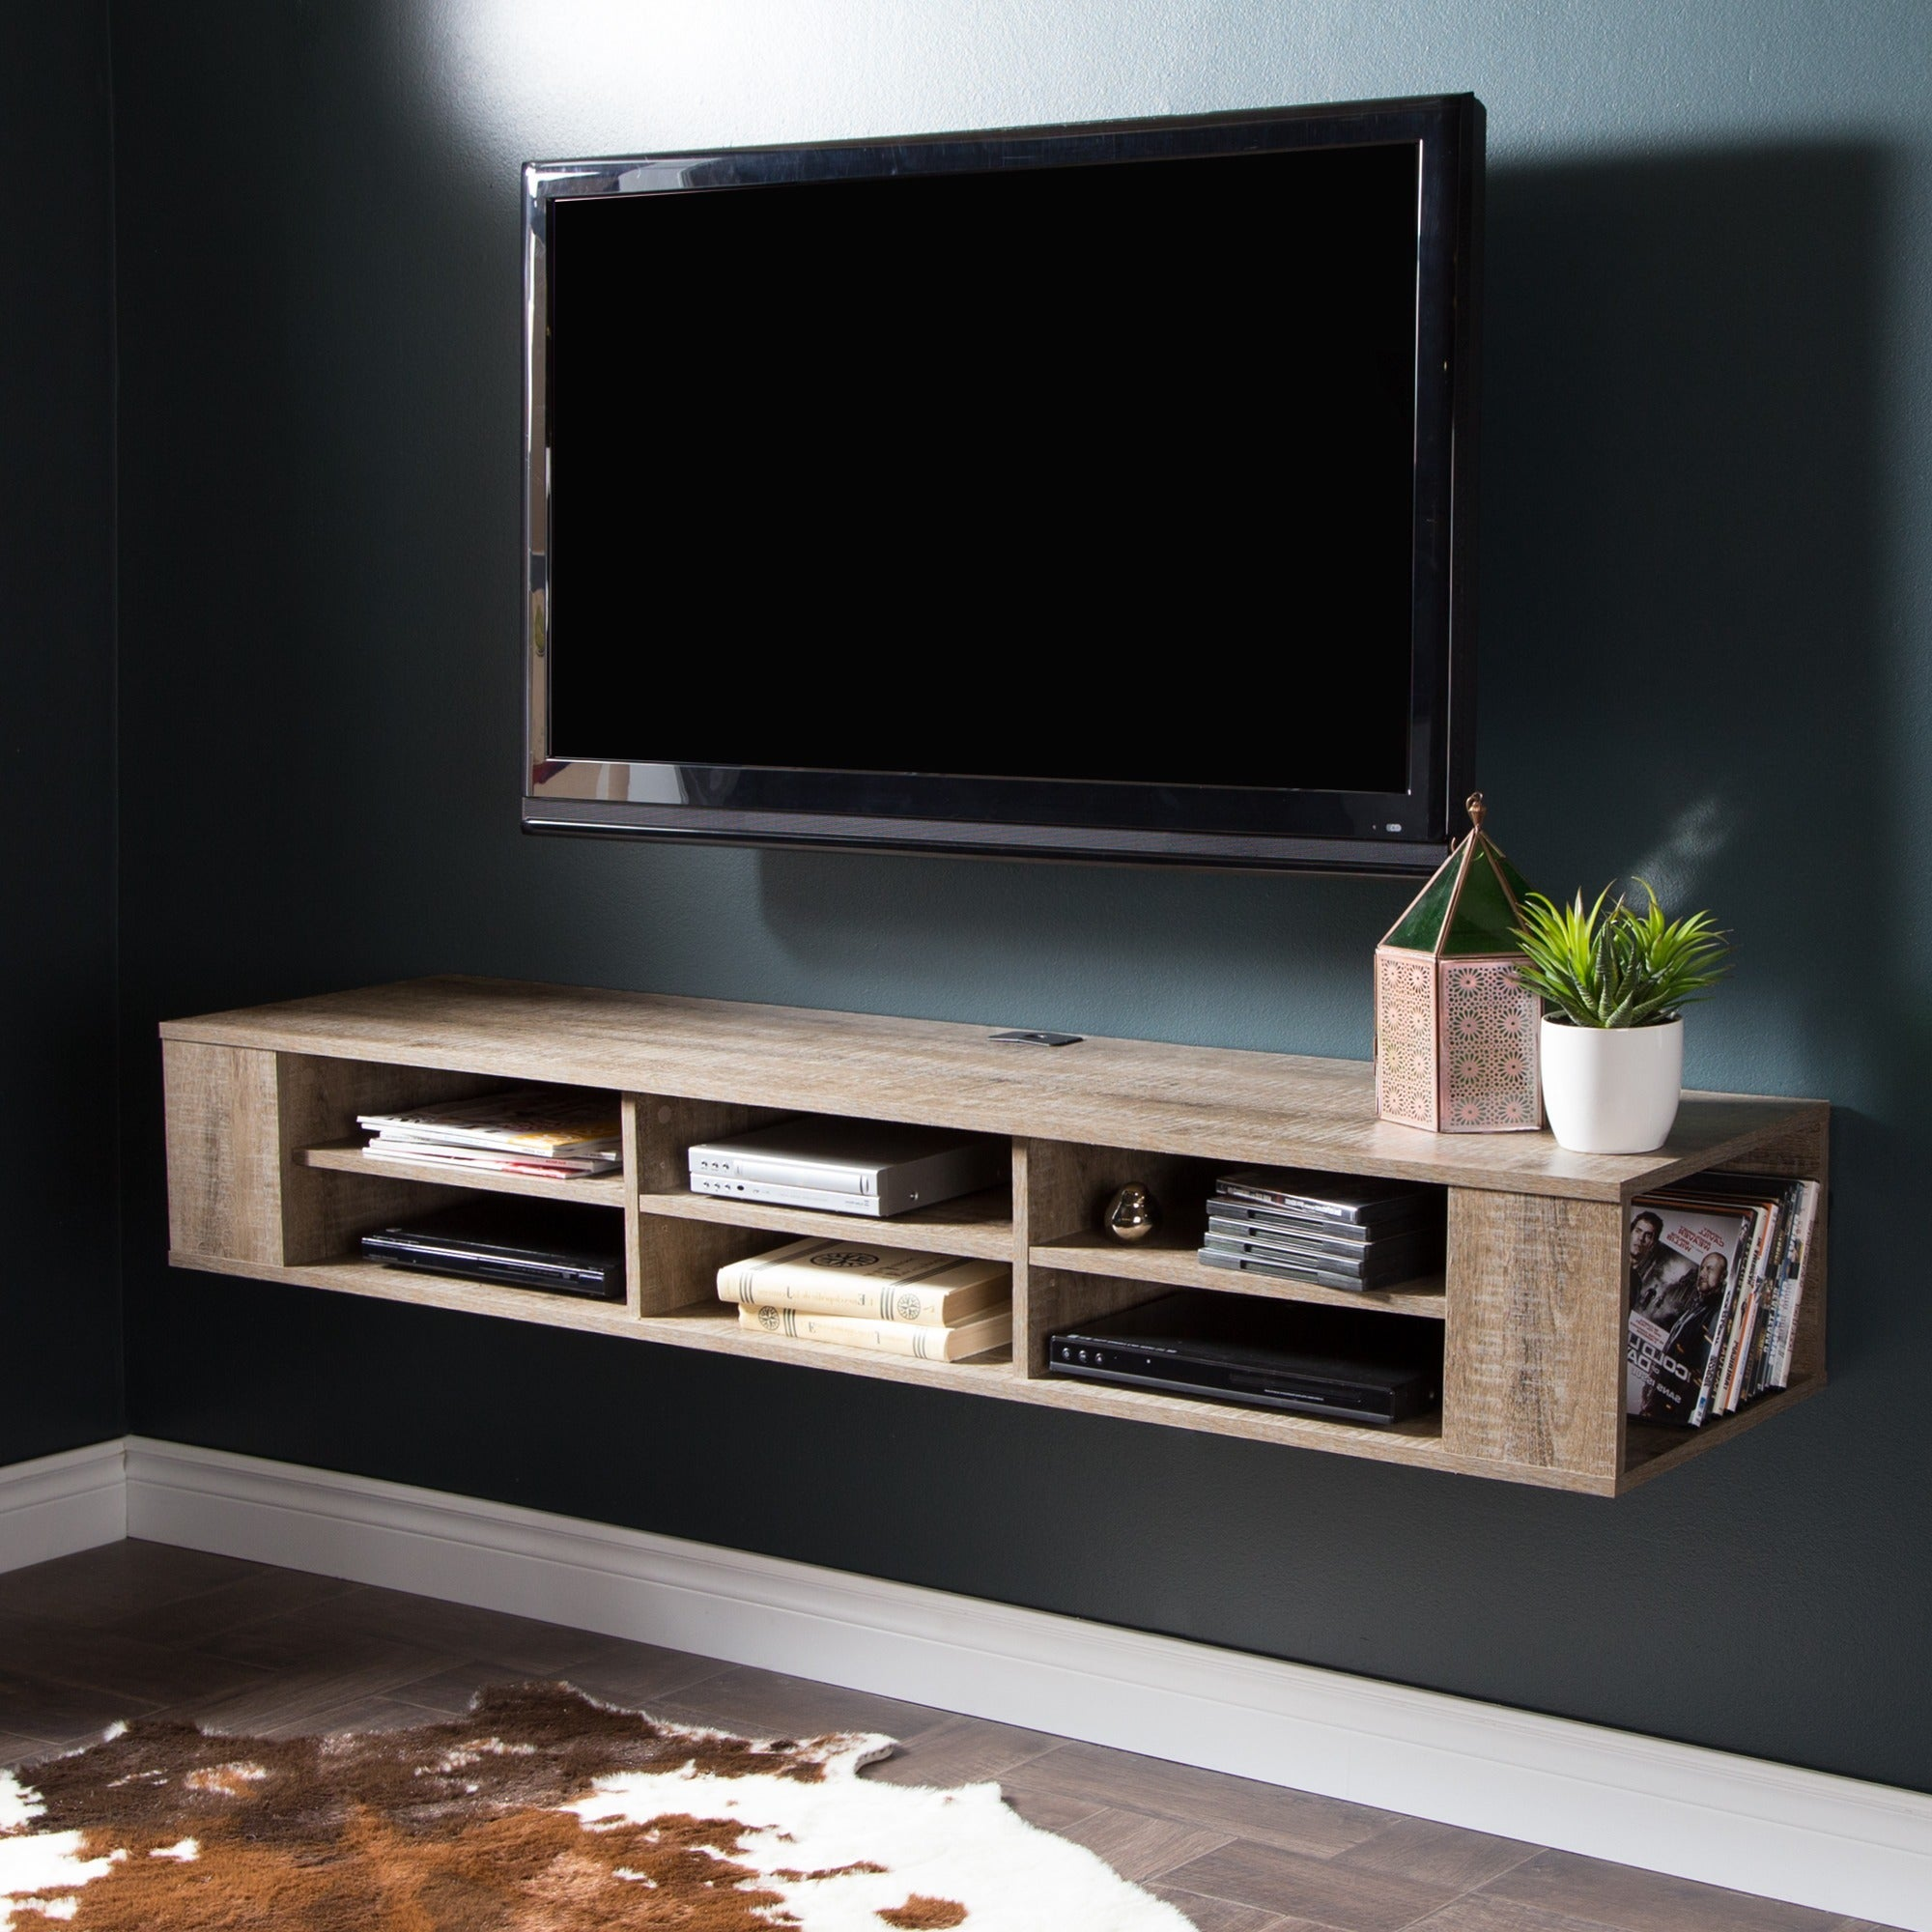 Captivating South Shore City Life 66 Inch Wall Mounted Media Console   Free Shipping  Today   Overstock.com   17453193 Awesome Ideas